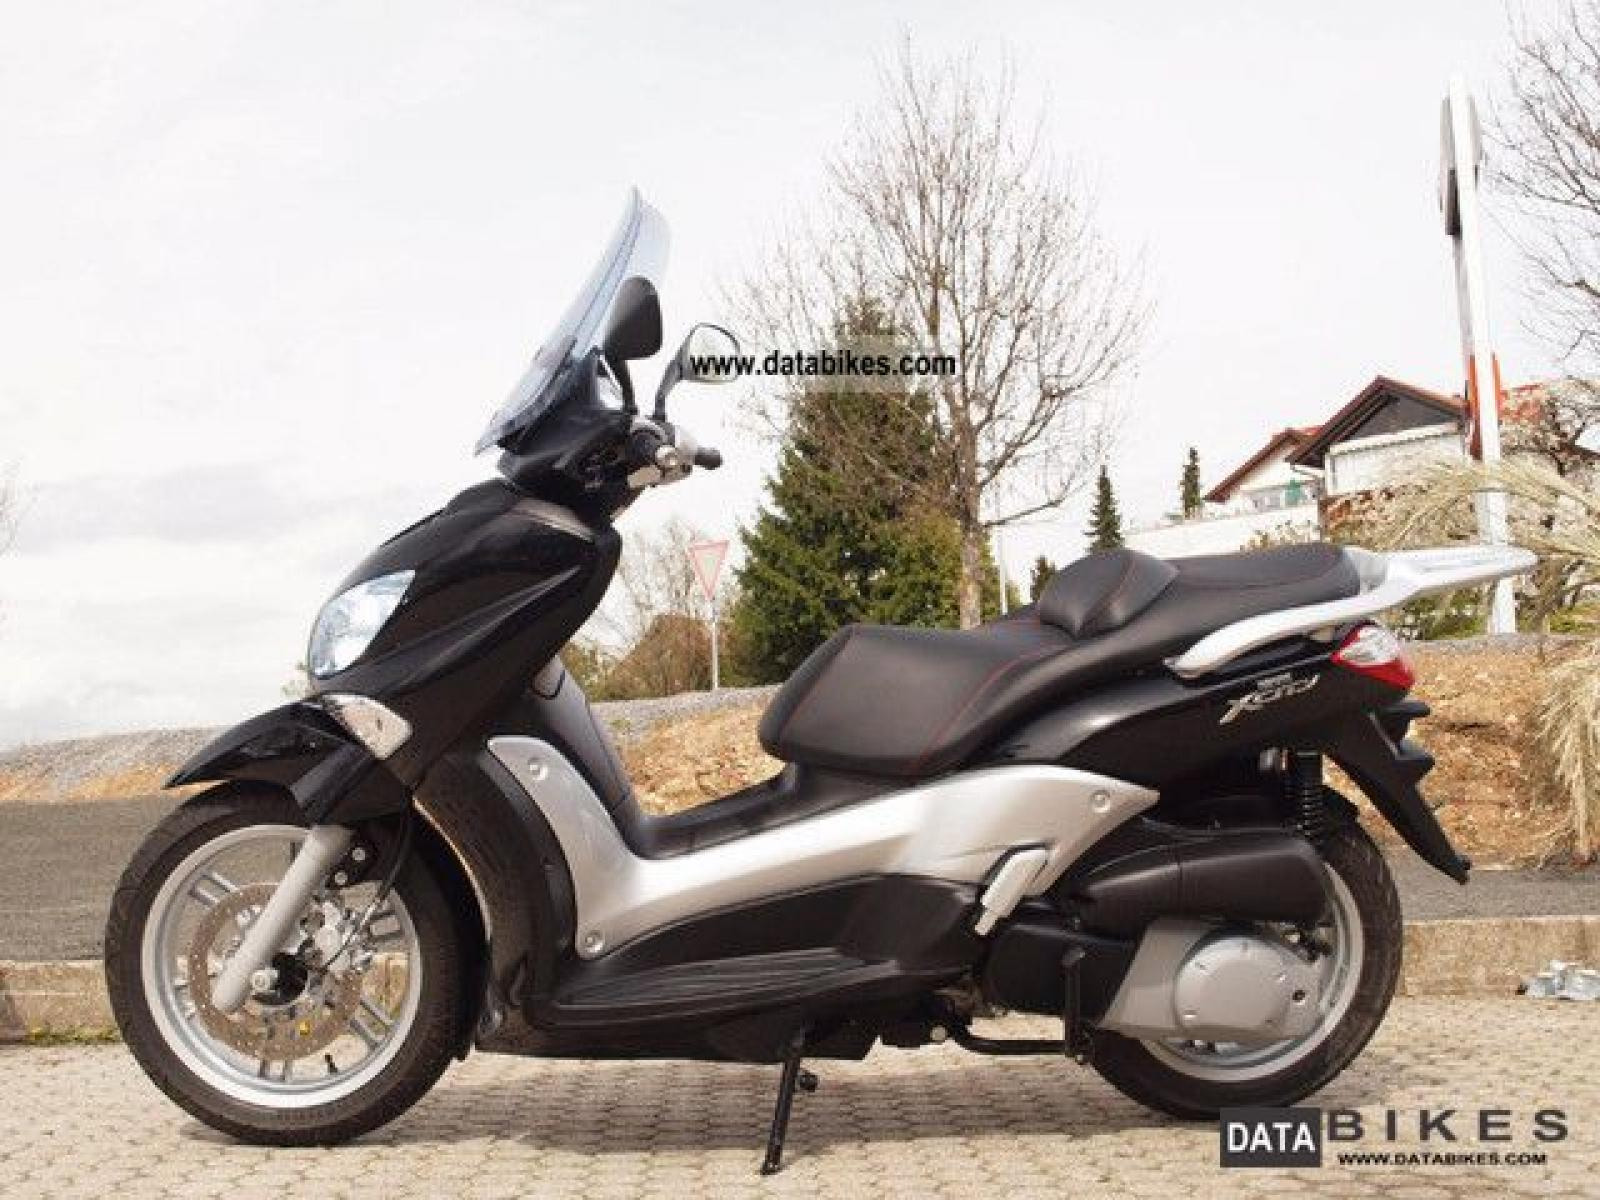 2010 yamaha x city 250 pics specs and information. Black Bedroom Furniture Sets. Home Design Ideas